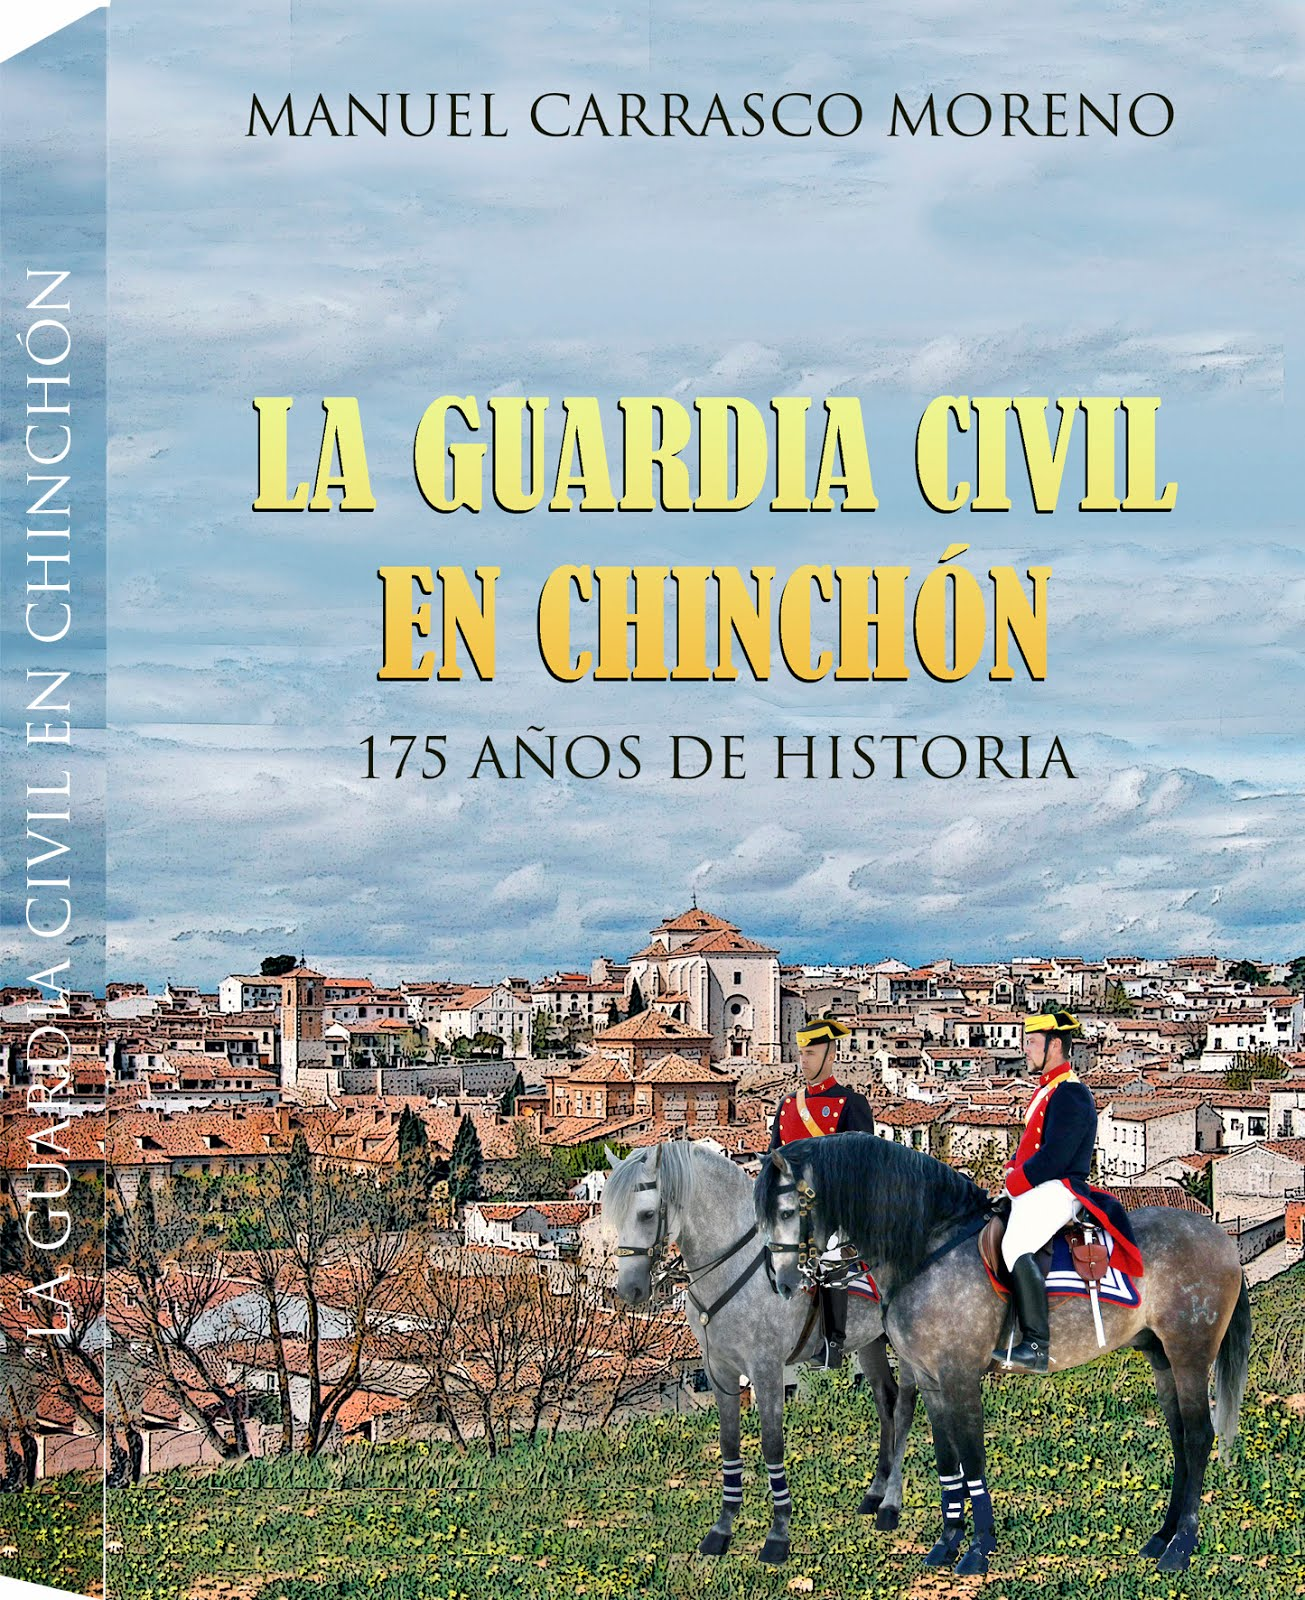 LA GUARDIA CIVIL EN CHINCHÓN